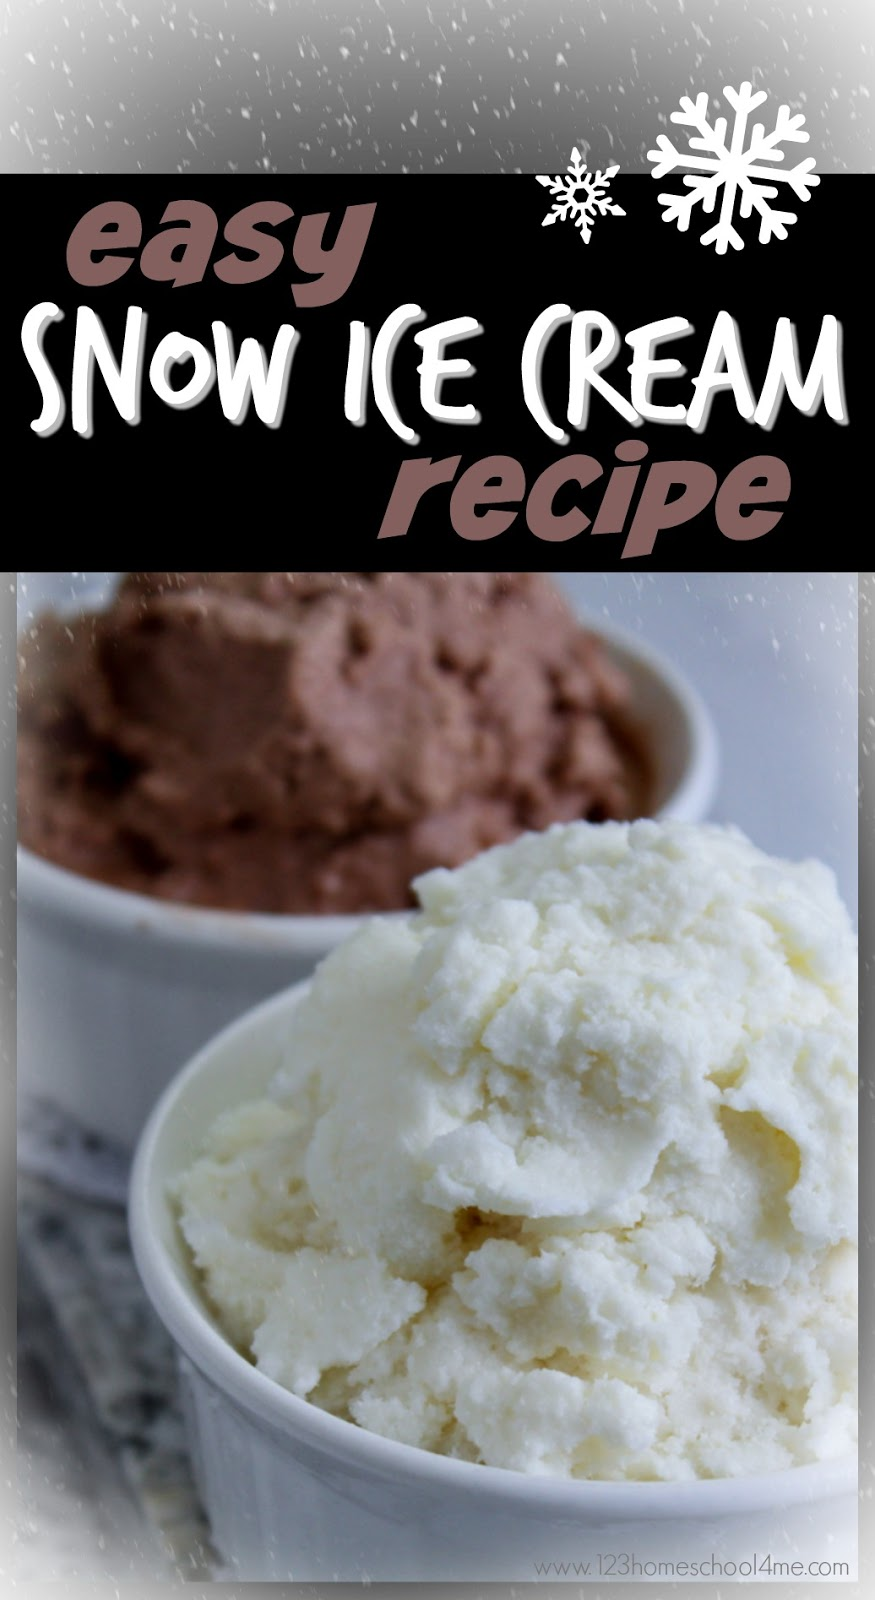 Easy snow ice cream recipe ccuart Gallery